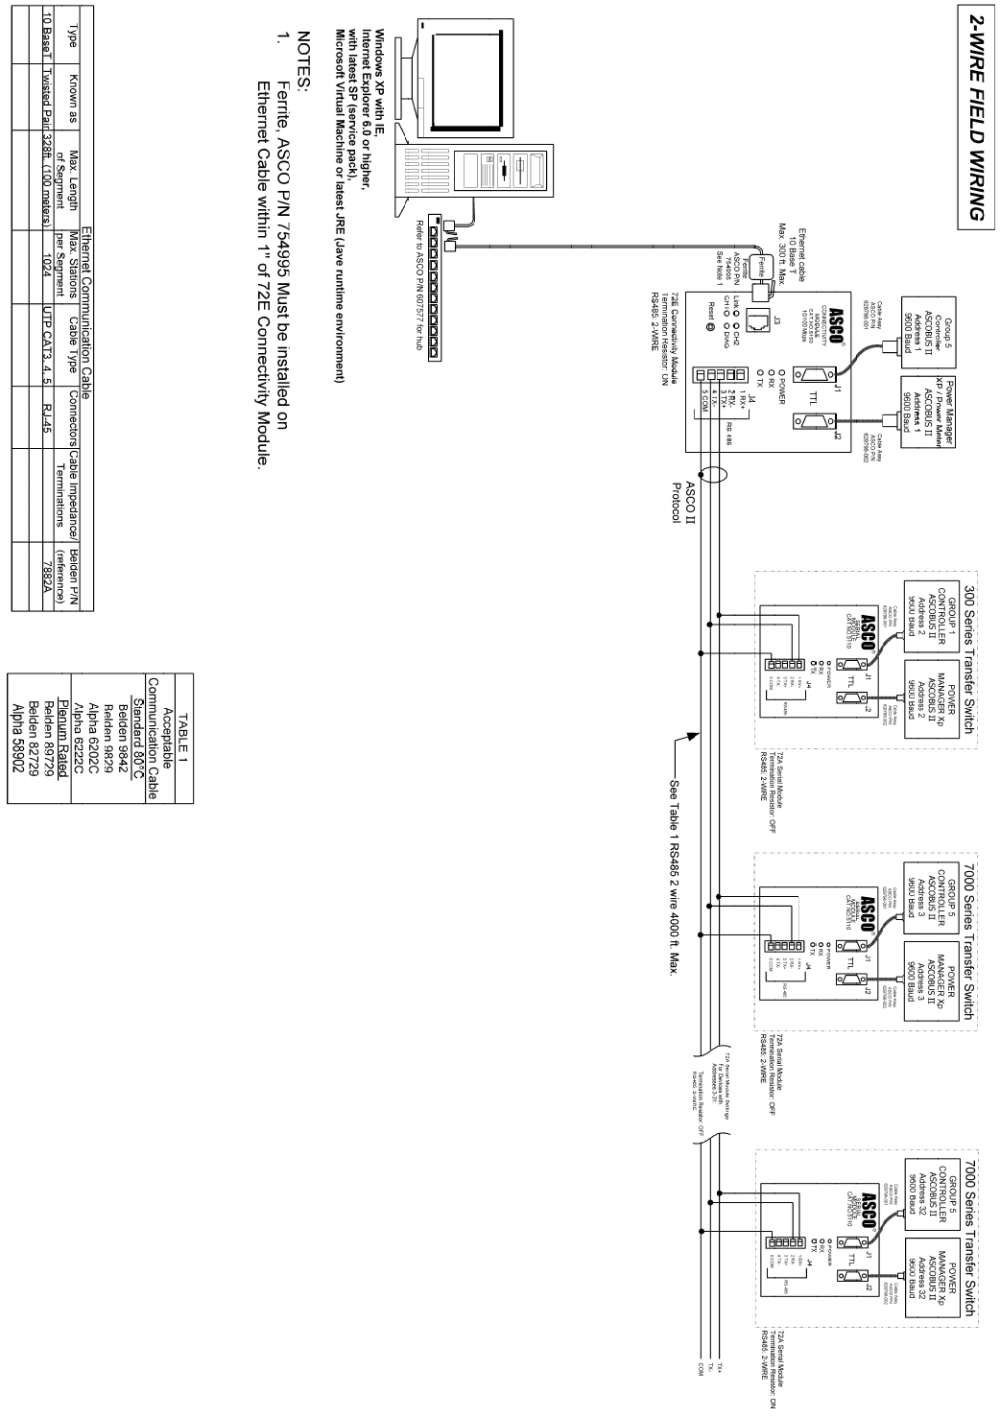 medium resolution of rs485 2 wire wiring diagram